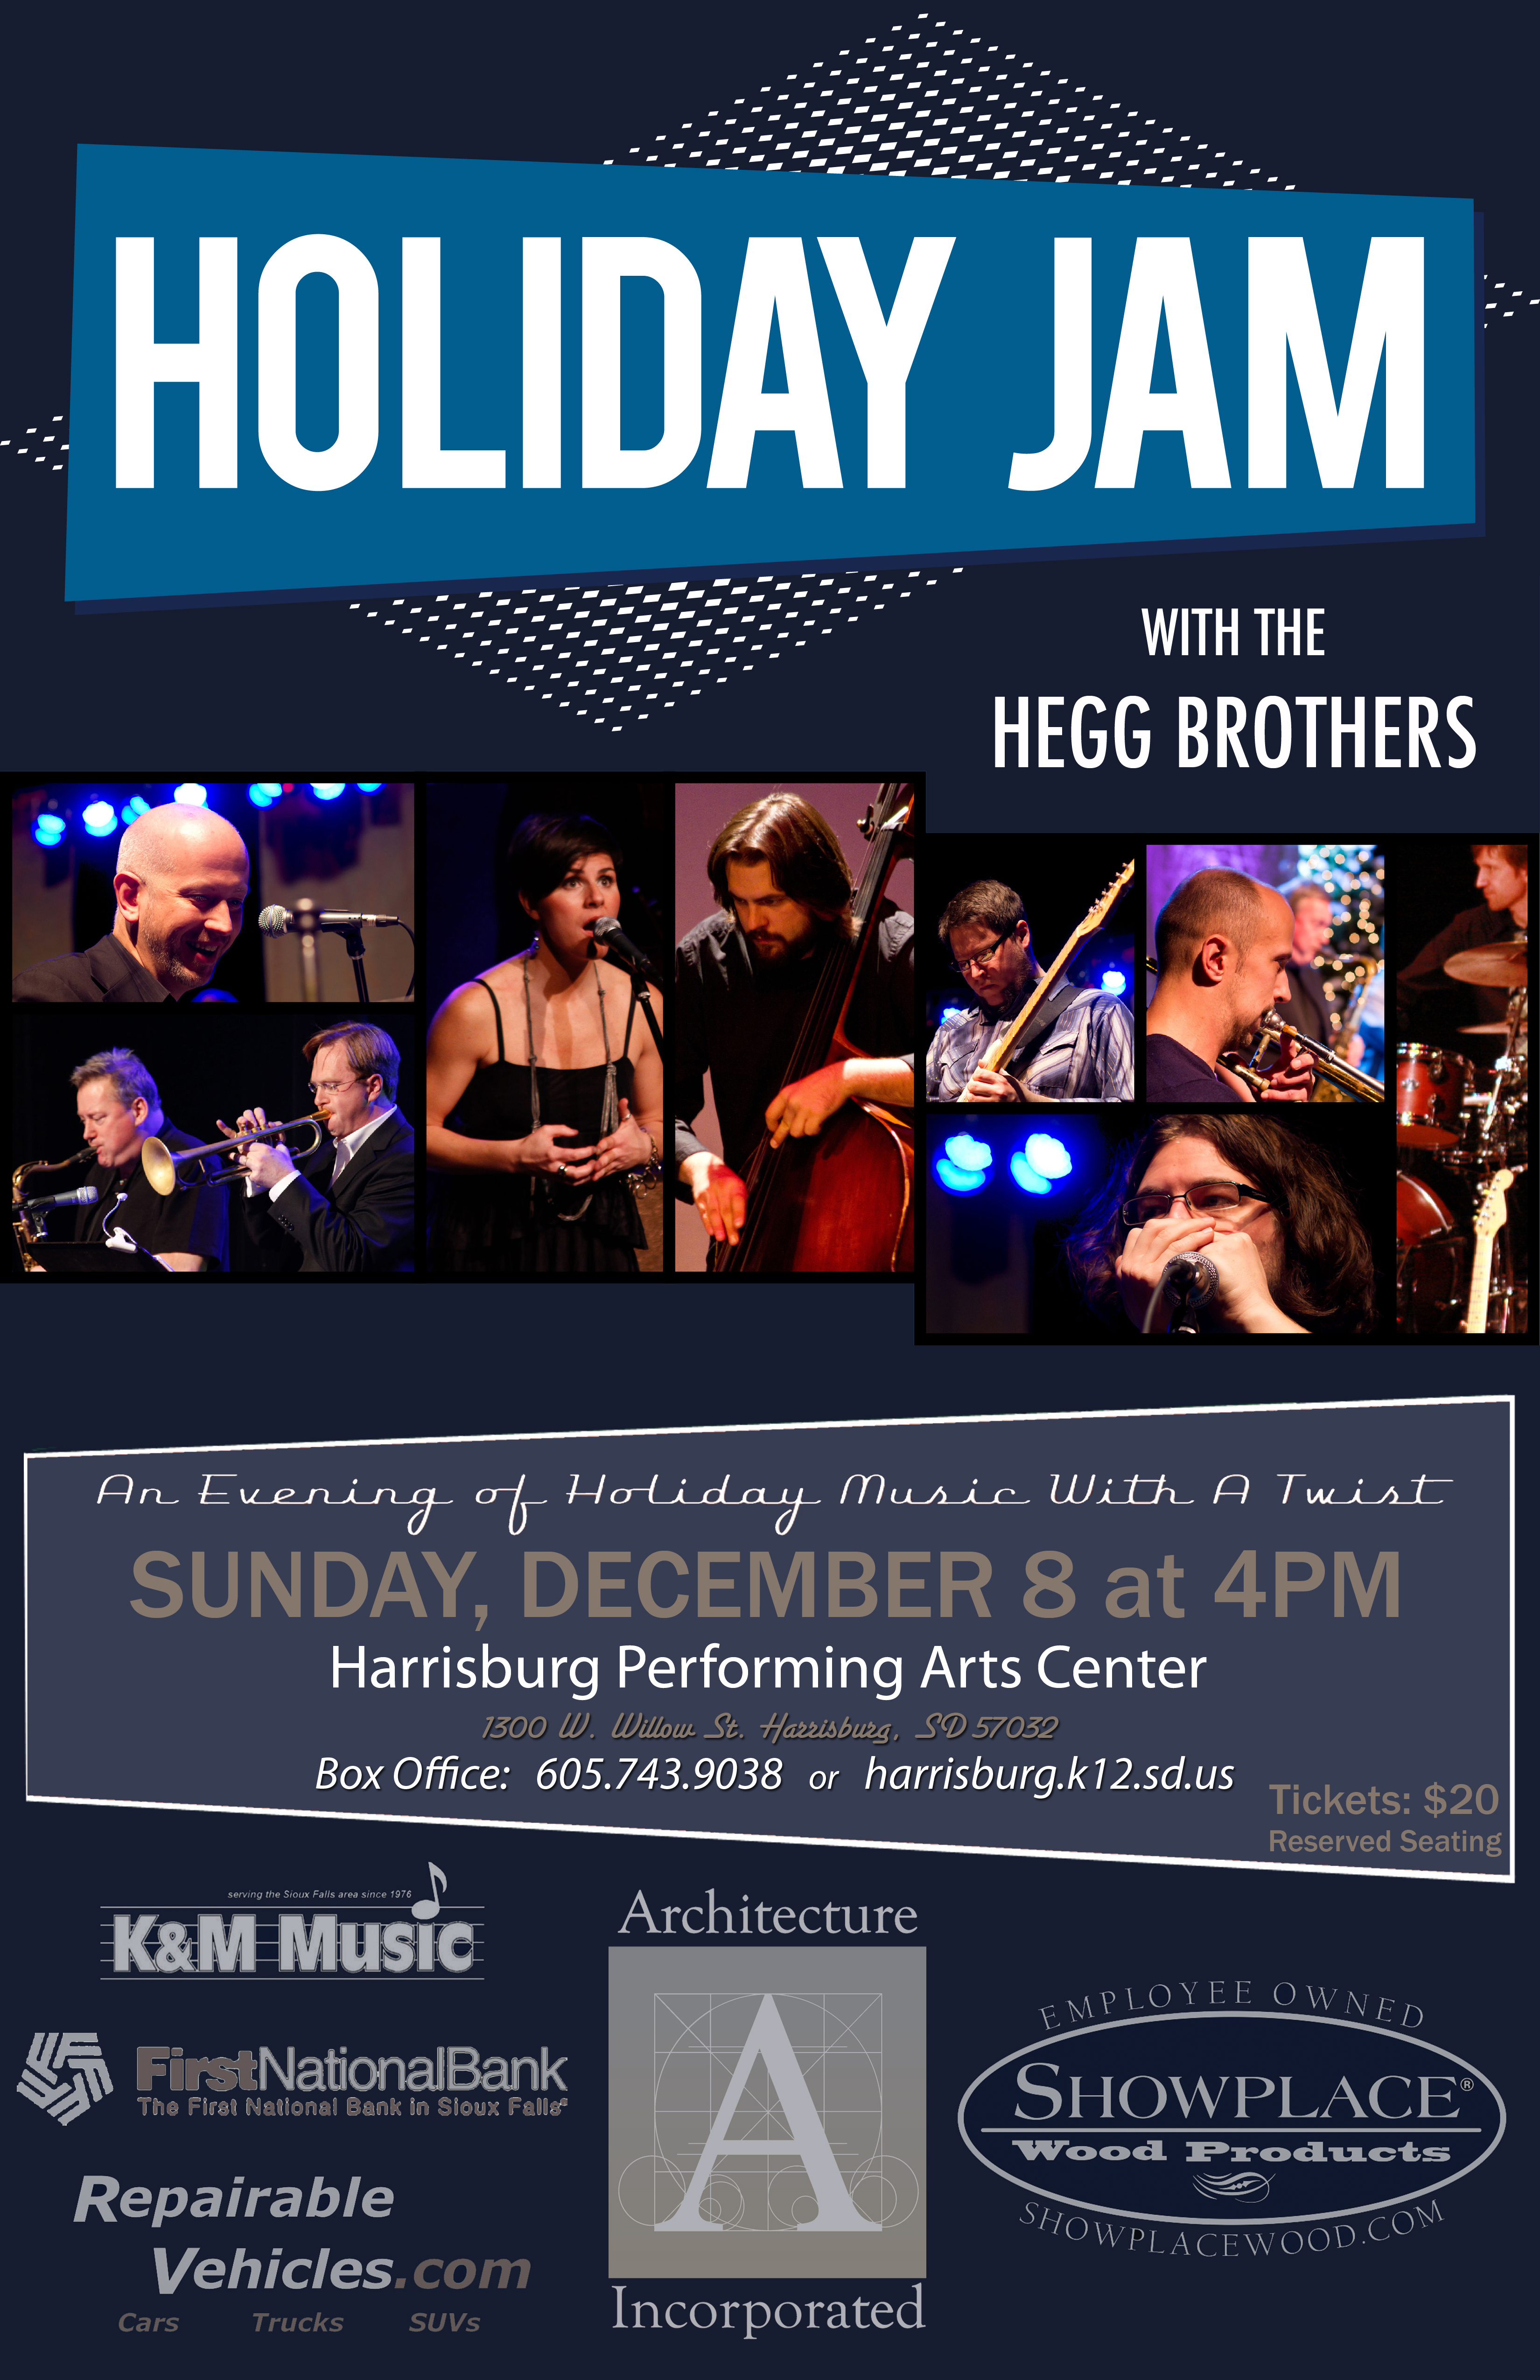 Holiday jam 2013 poster